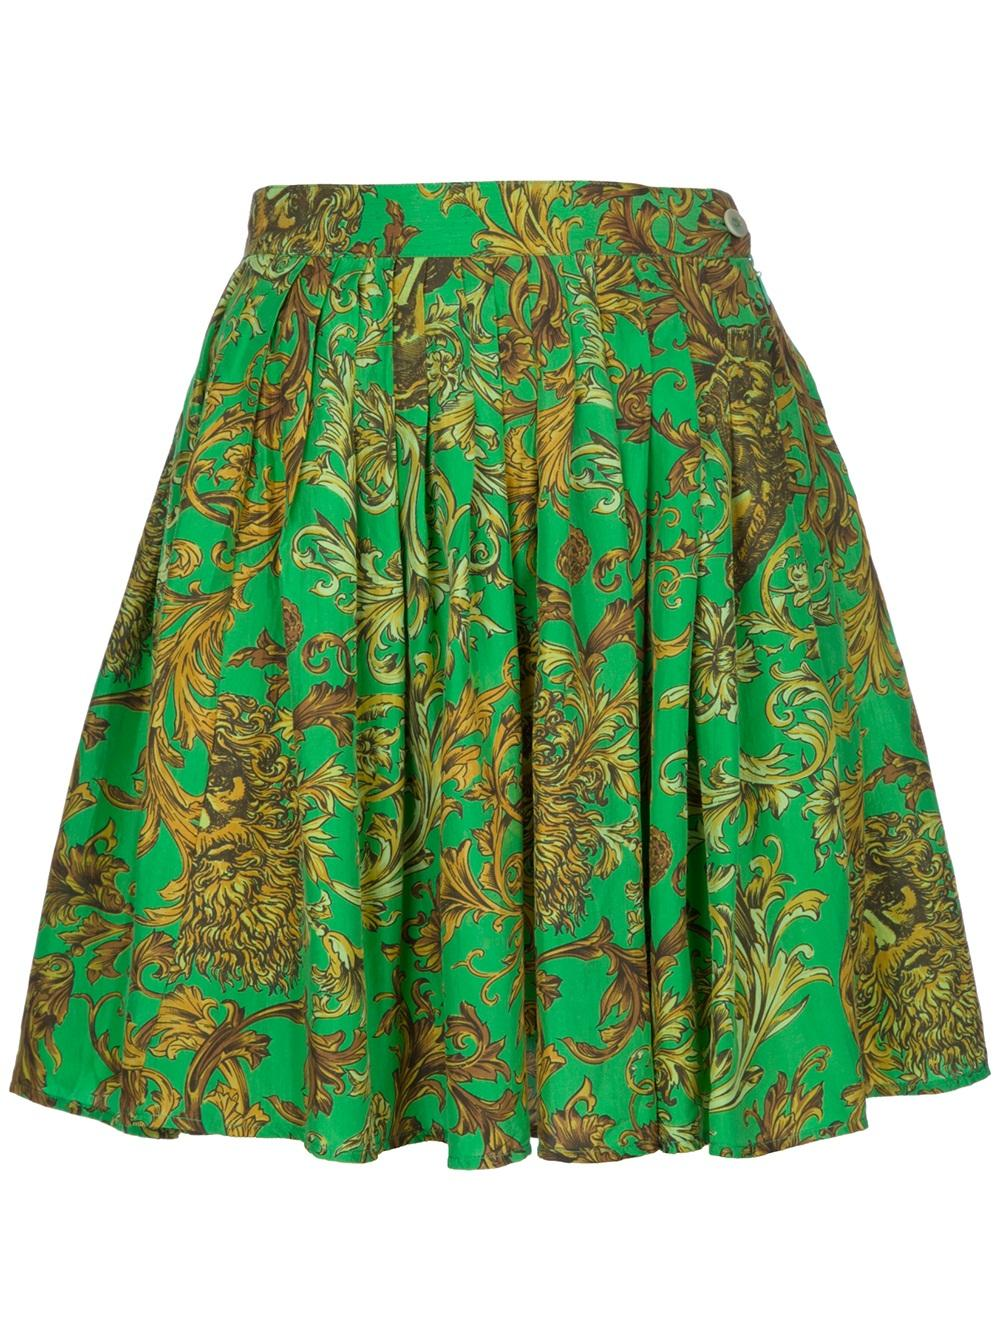 a line skirt pattern 2014 2015 fashion trends 2016 2017